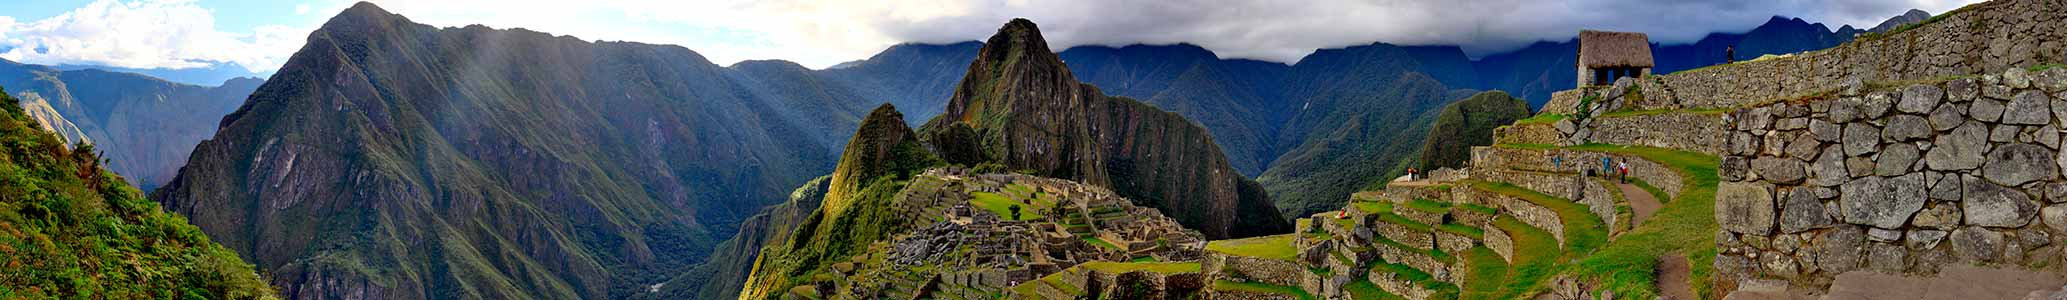 Peru Tour 2 Days / 1 Night